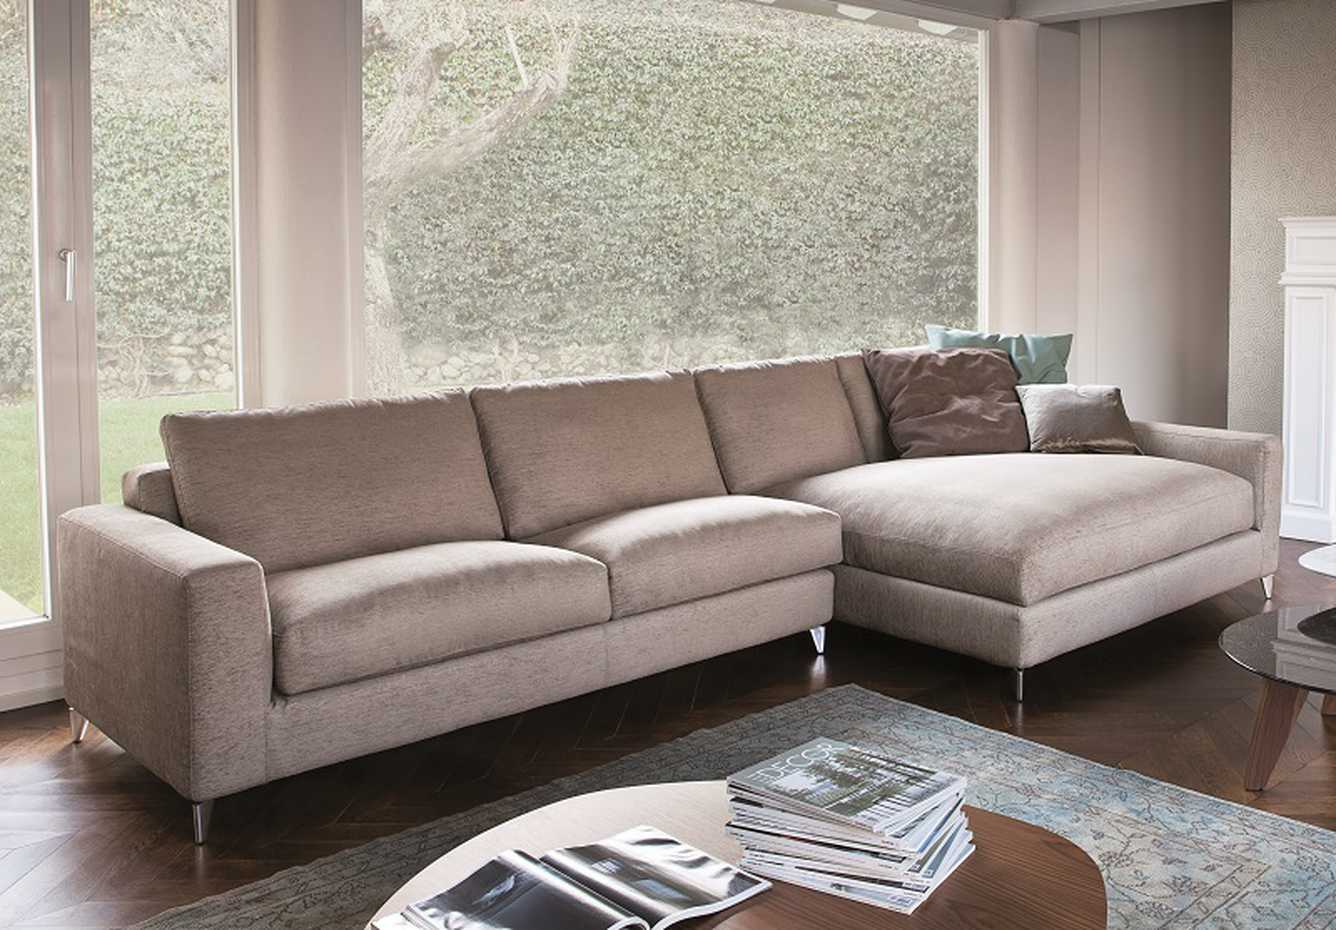 Zone Comfort by Vibieffe product image 6